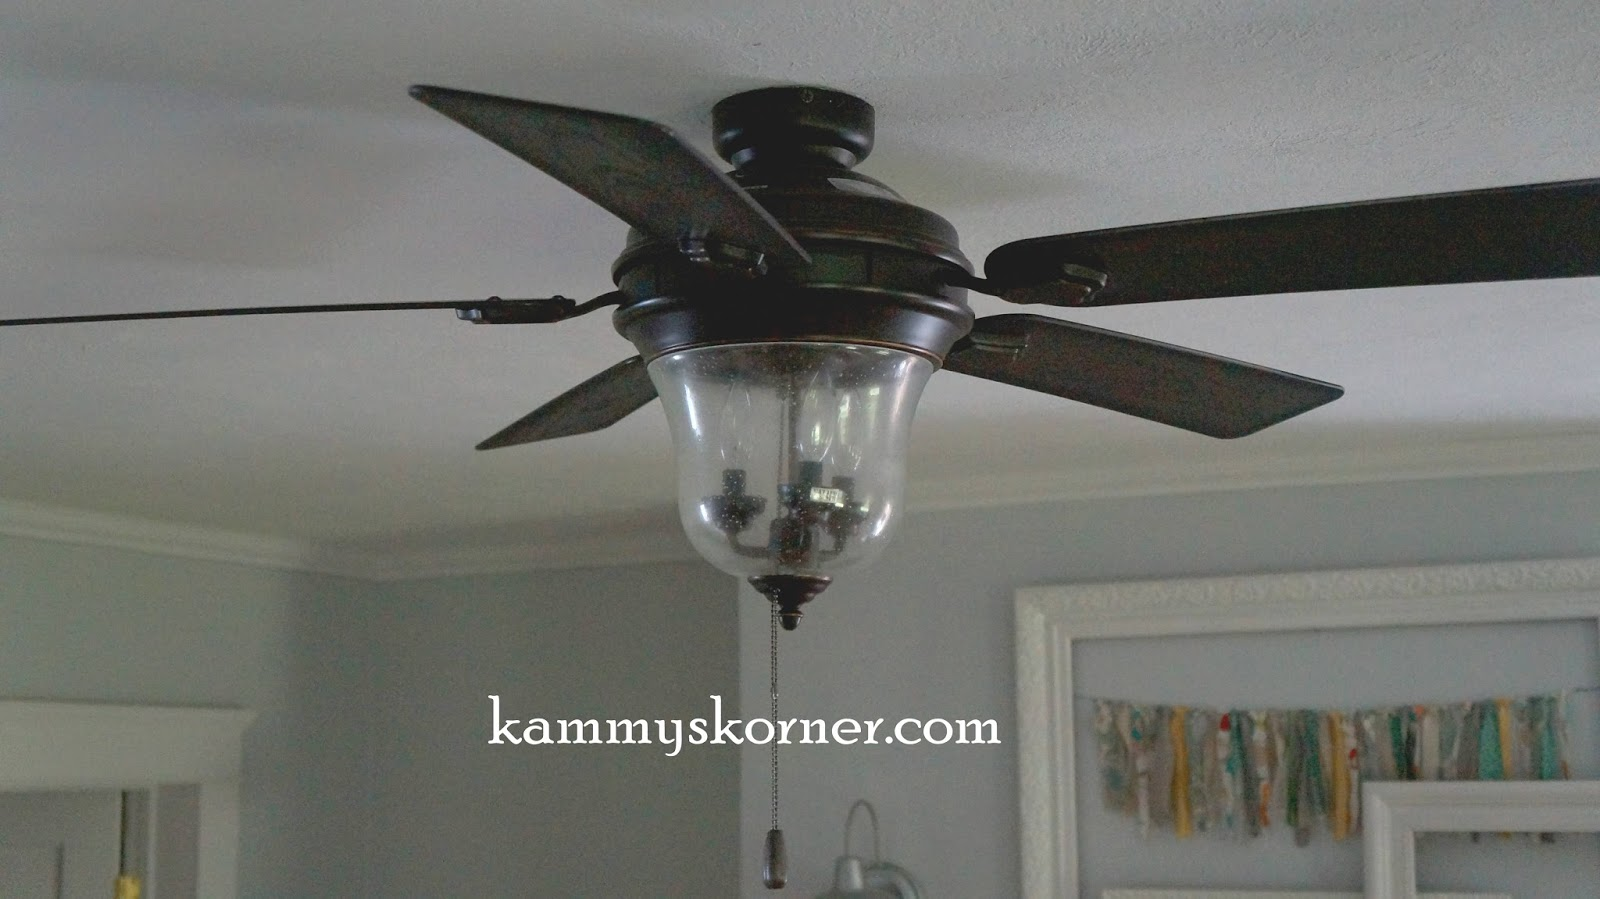 Menards Ceiling Fan: so itu0027s not as powerful as itu0027s predecessor but it keeps me from  thinking iu0027m hitting menopause early and even though itu0027s a ceiling  fan i ...,Lighting